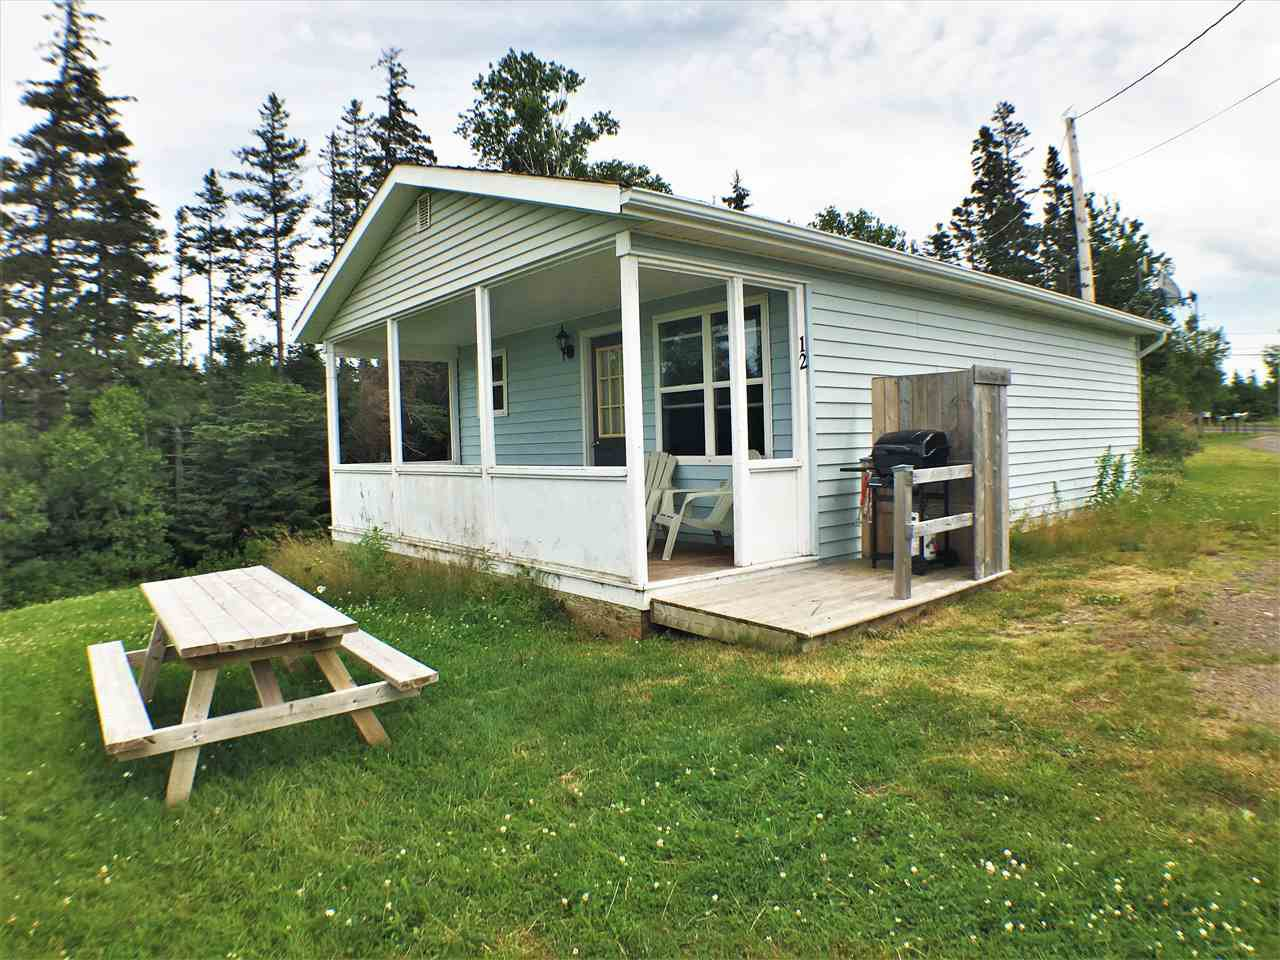 Main Photo: 12 Island View Crescent in Caribou River: 108-Rural Pictou County Residential for sale (Northern Region)  : MLS®# 201917829